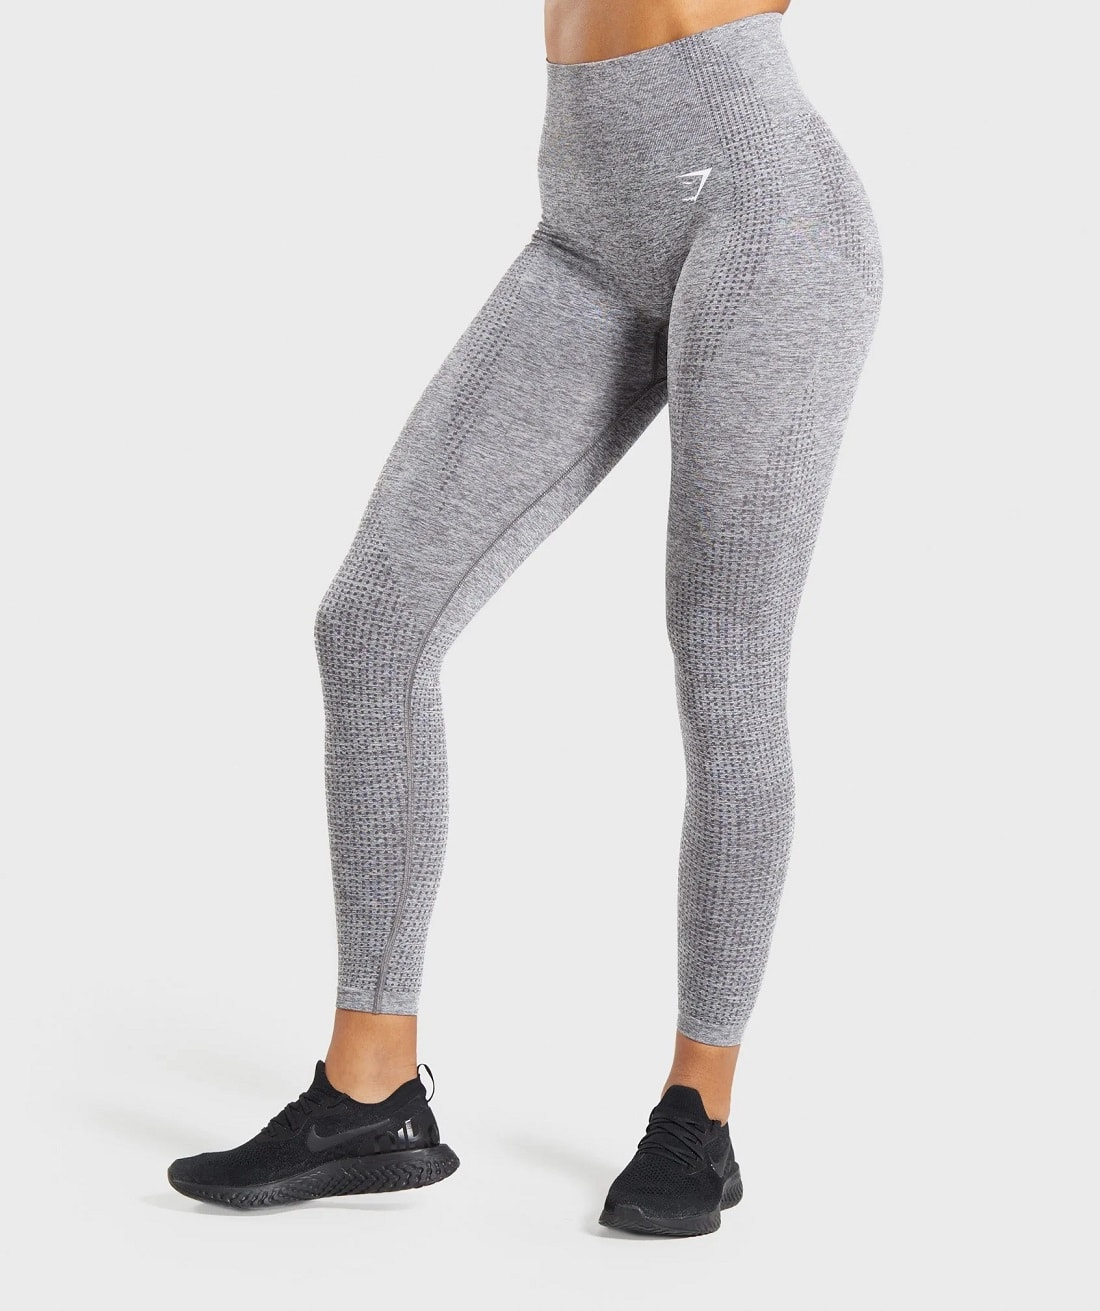 Best Gymshark Squat Proof and Compression Leggings